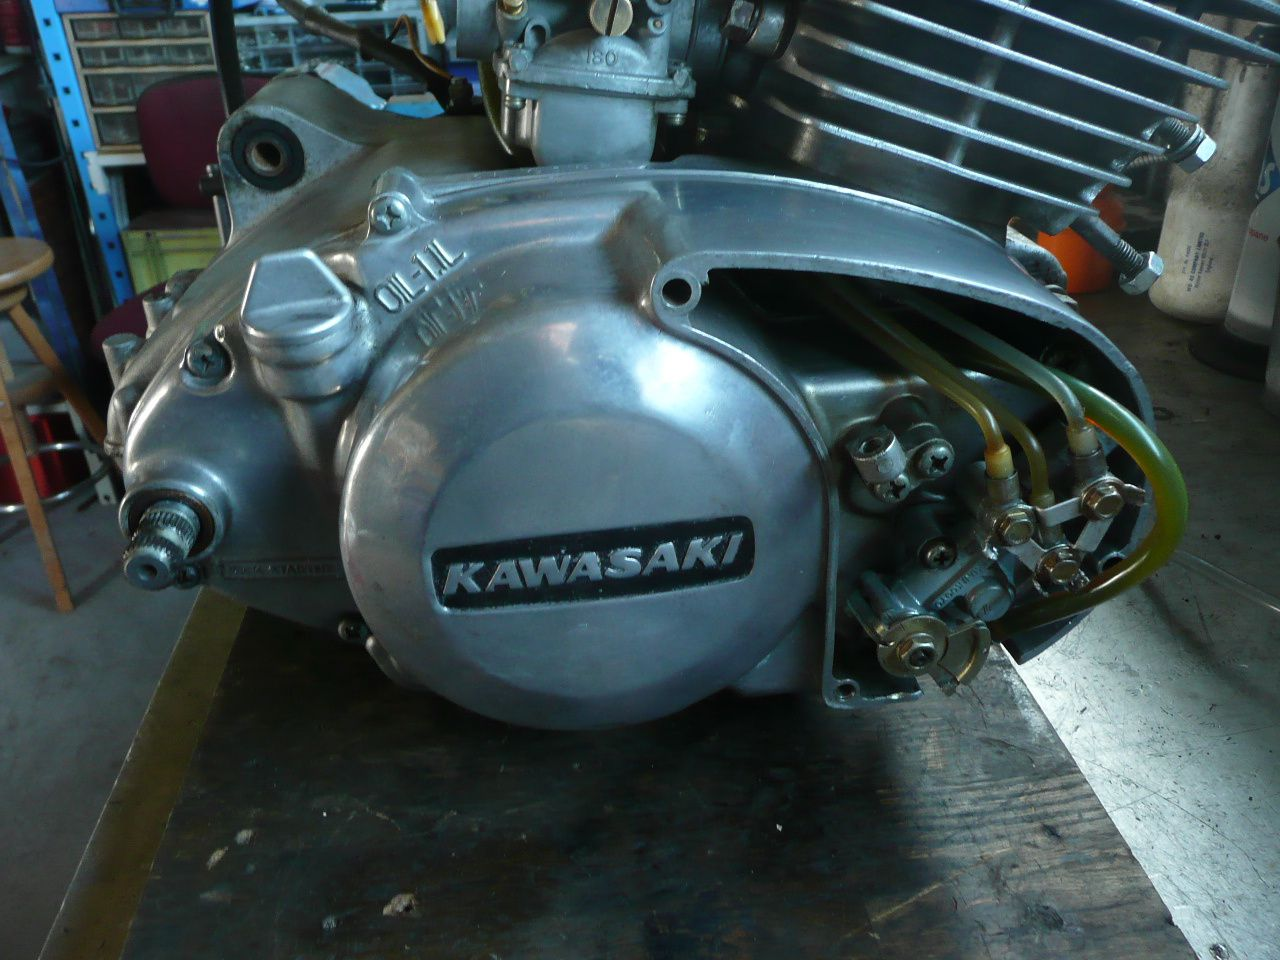 Album - Restauration kawasaki 400 S3